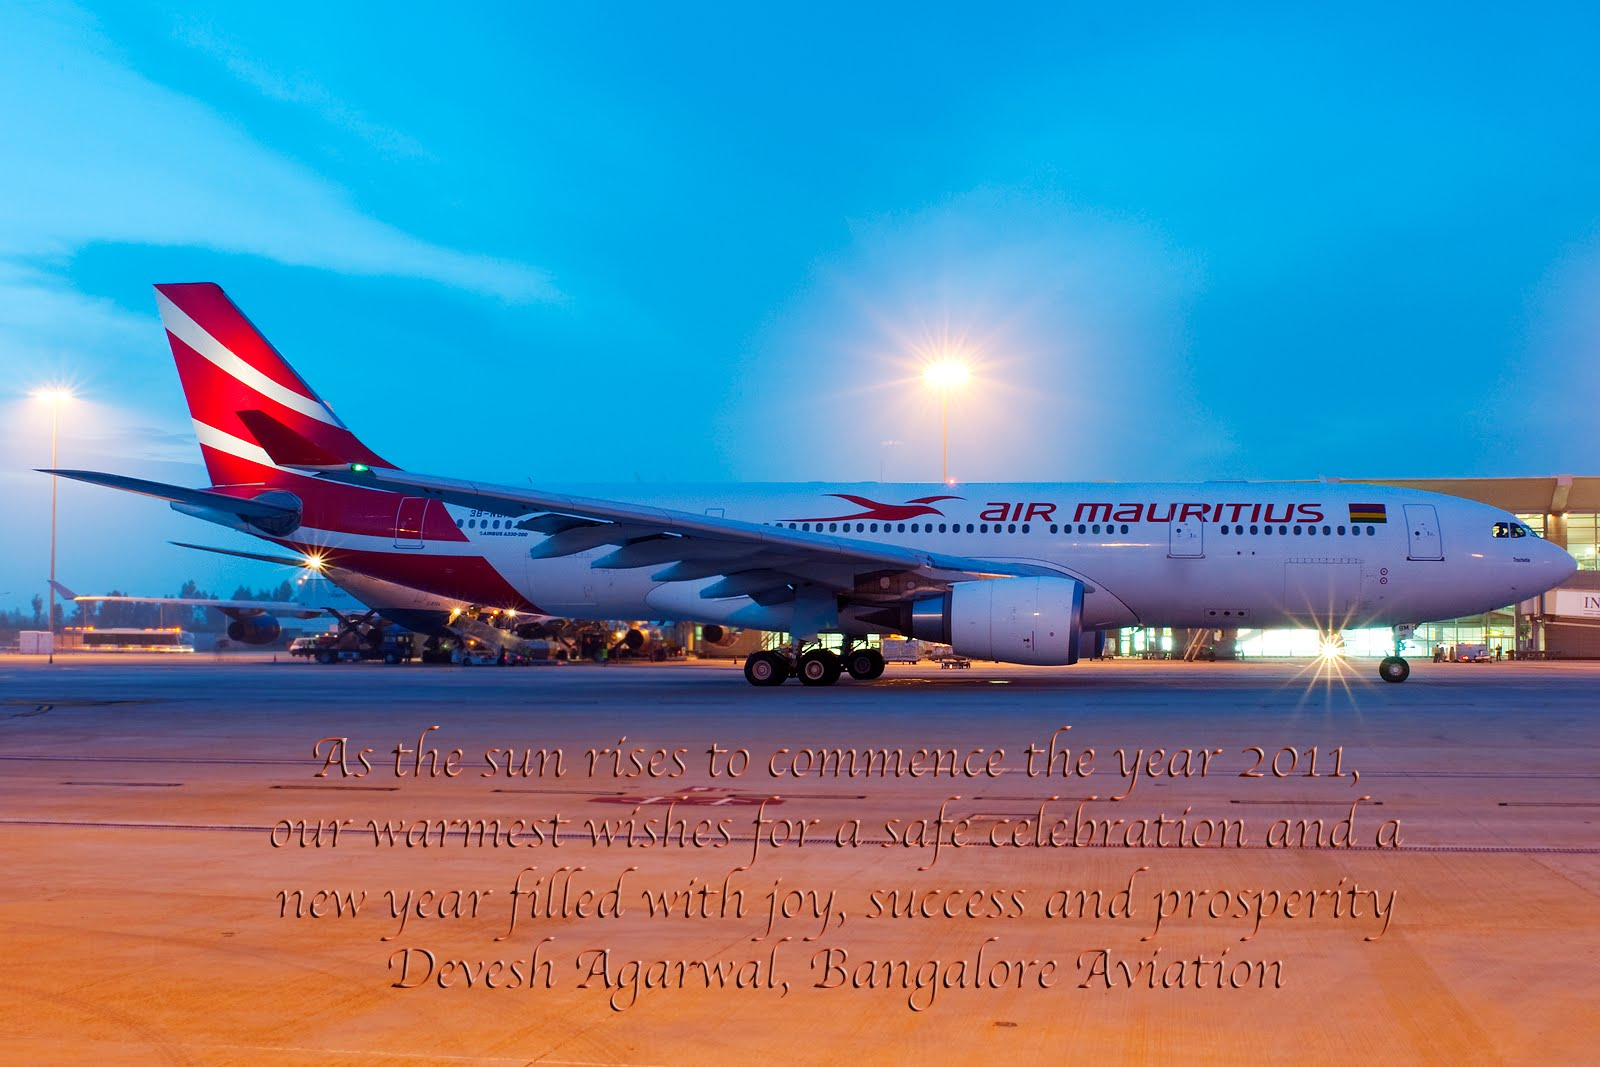 Plane spotting pictures: Air Mauritius Airbus A330 in the bluest